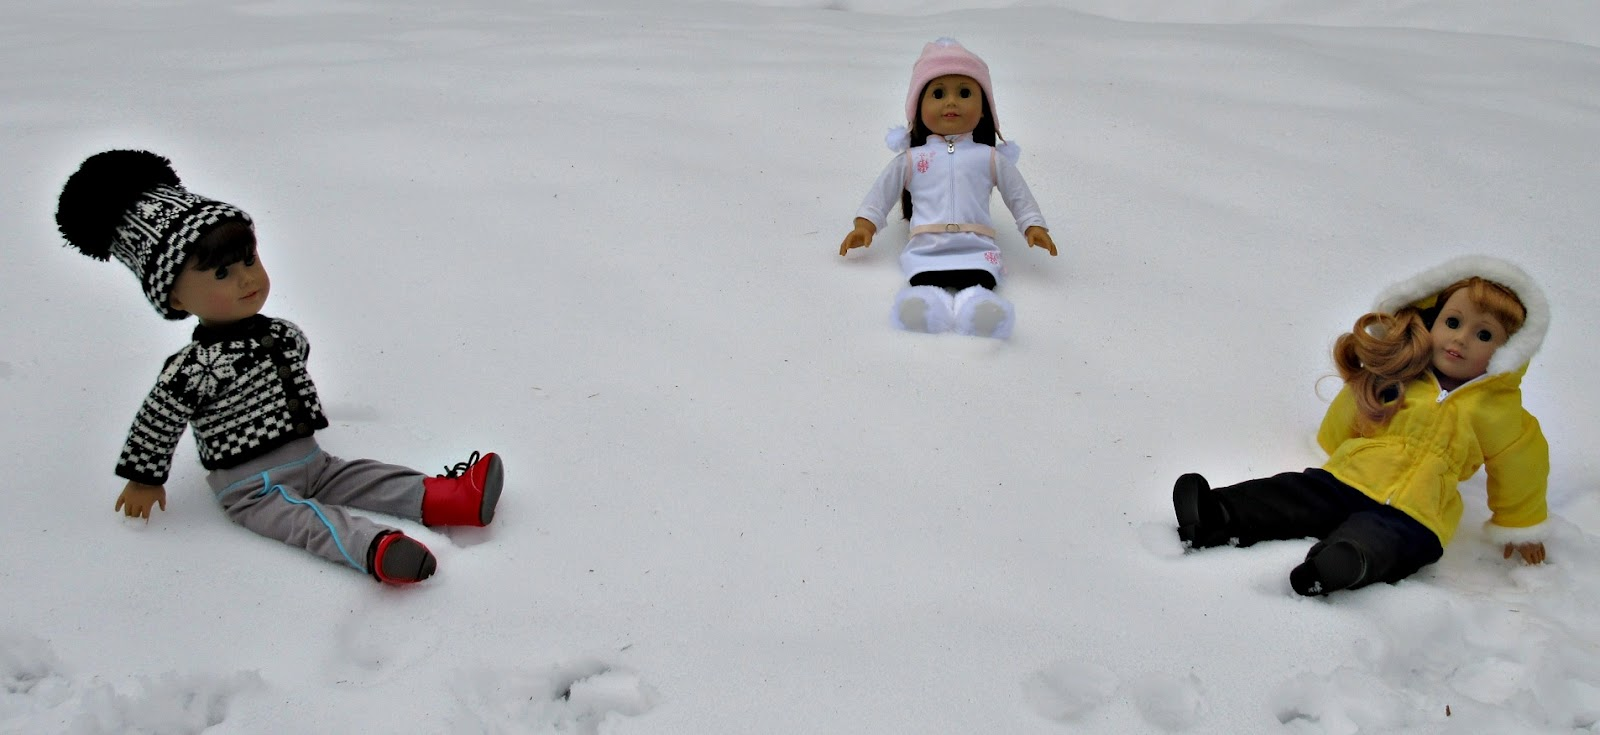 American girl doll super snow day.jpg